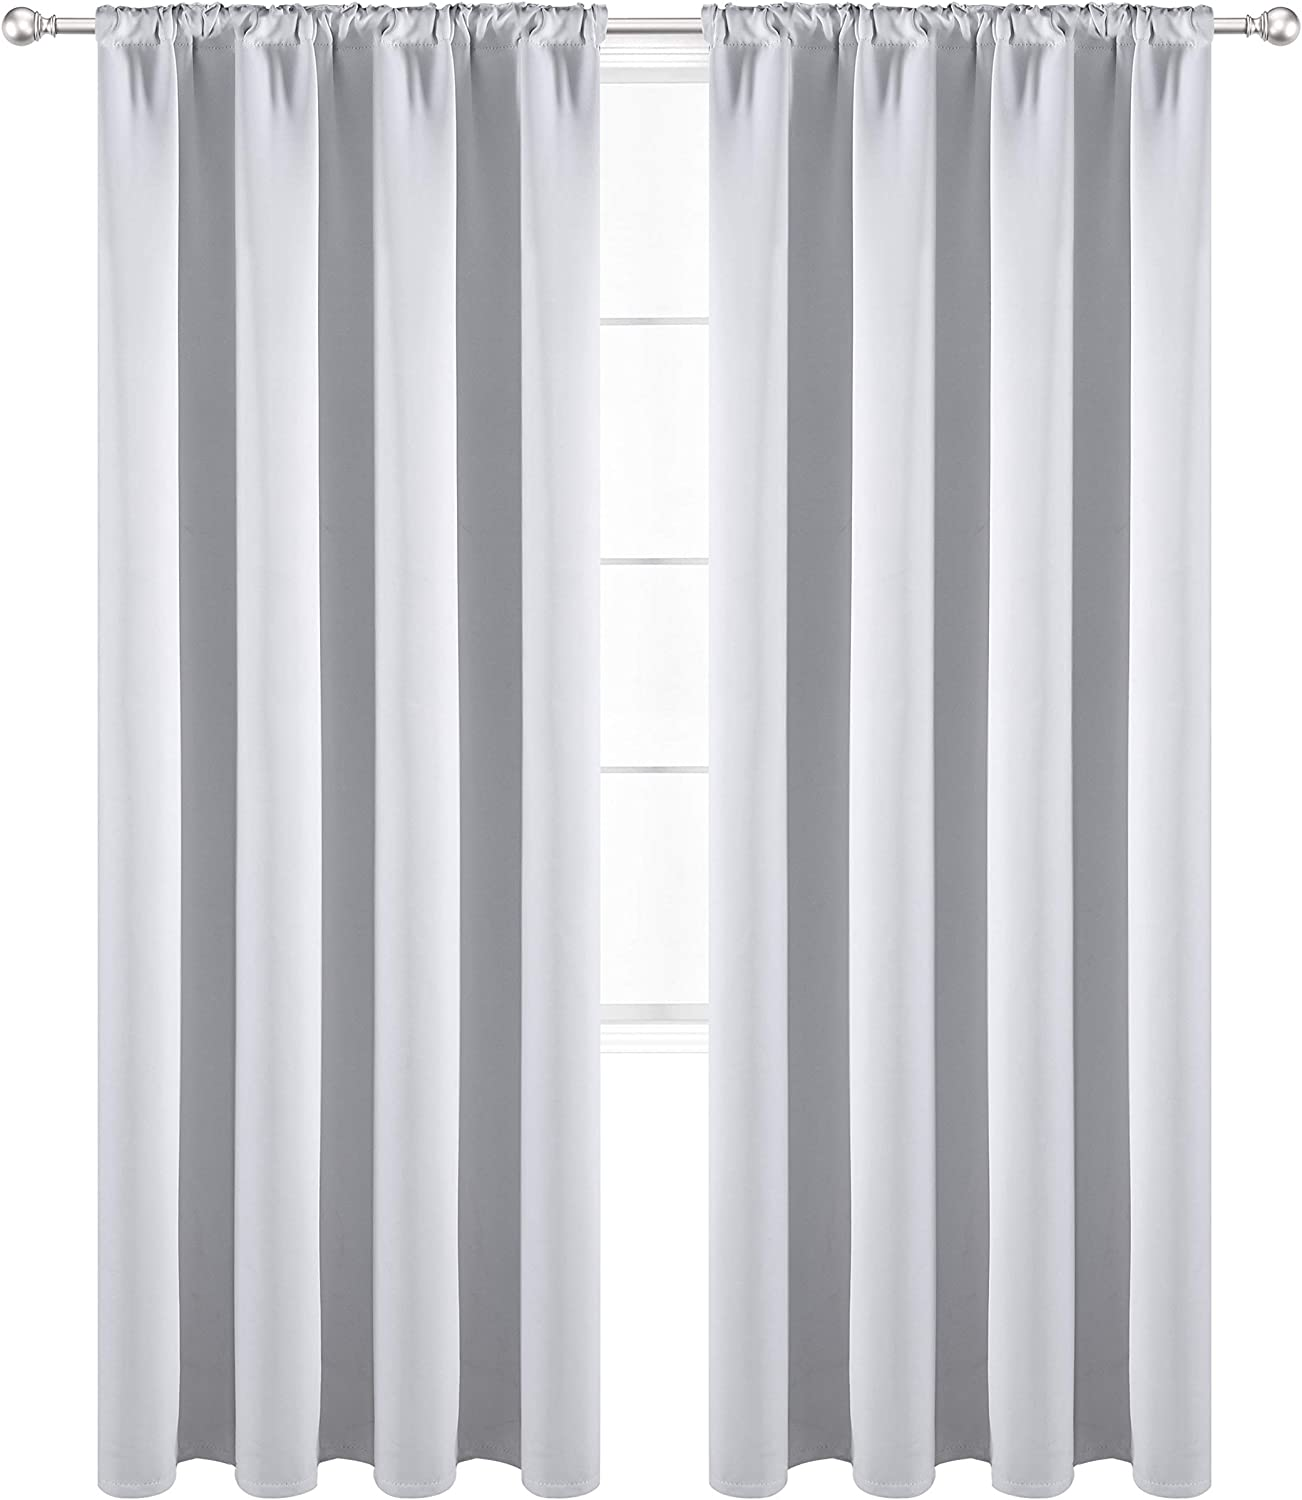 Outstanding WONTEX Thermal Insulated Blackout Curtains and Bombing new work Poc Rod Tab Back